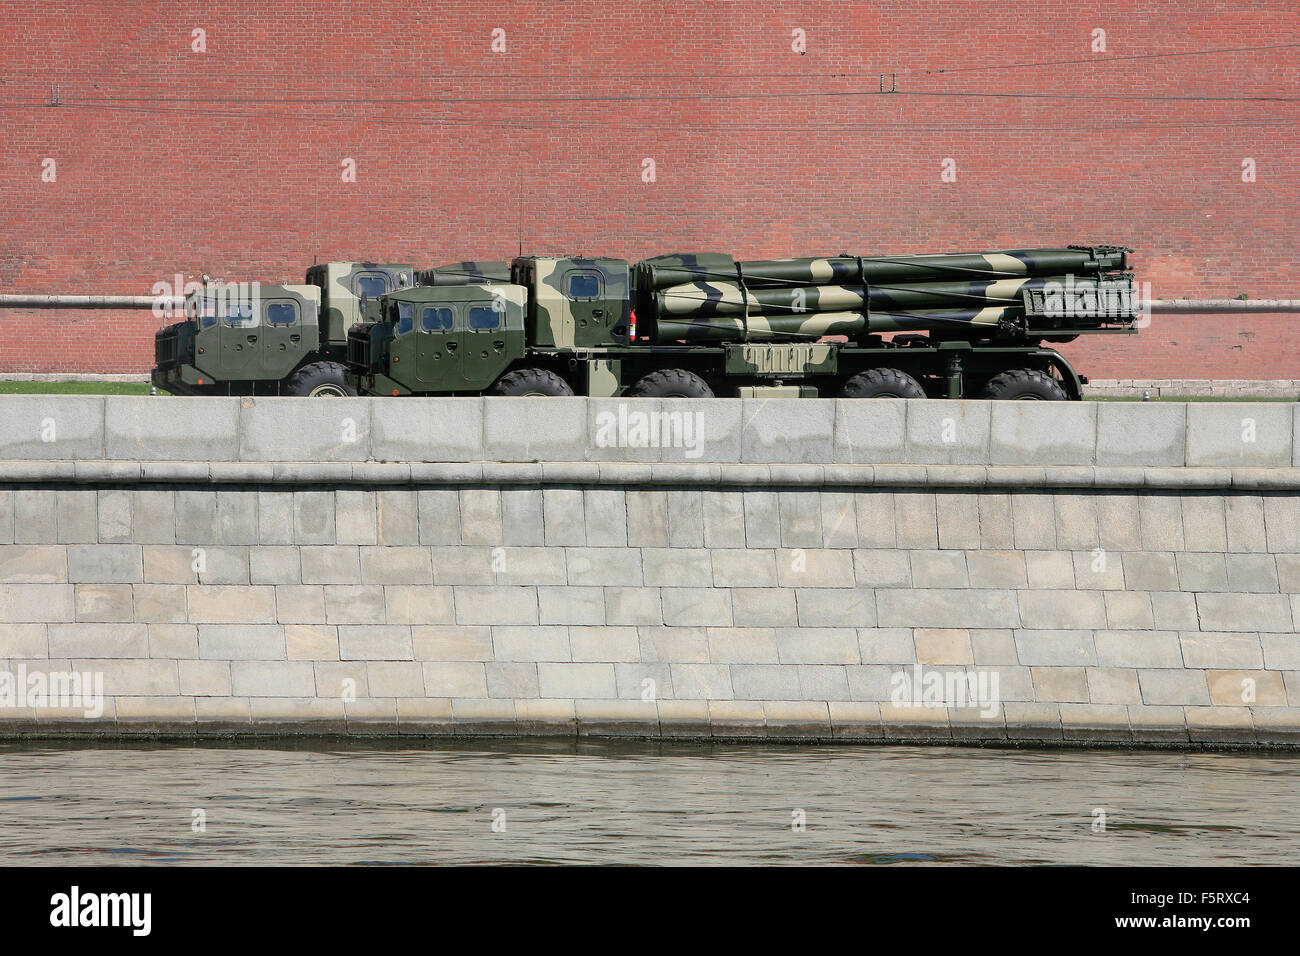 The BM-30 Smerch heavy multiple rocket launcher during the 2009 Moscow Victory Day Parade in Moscow, Russia - Stock Image